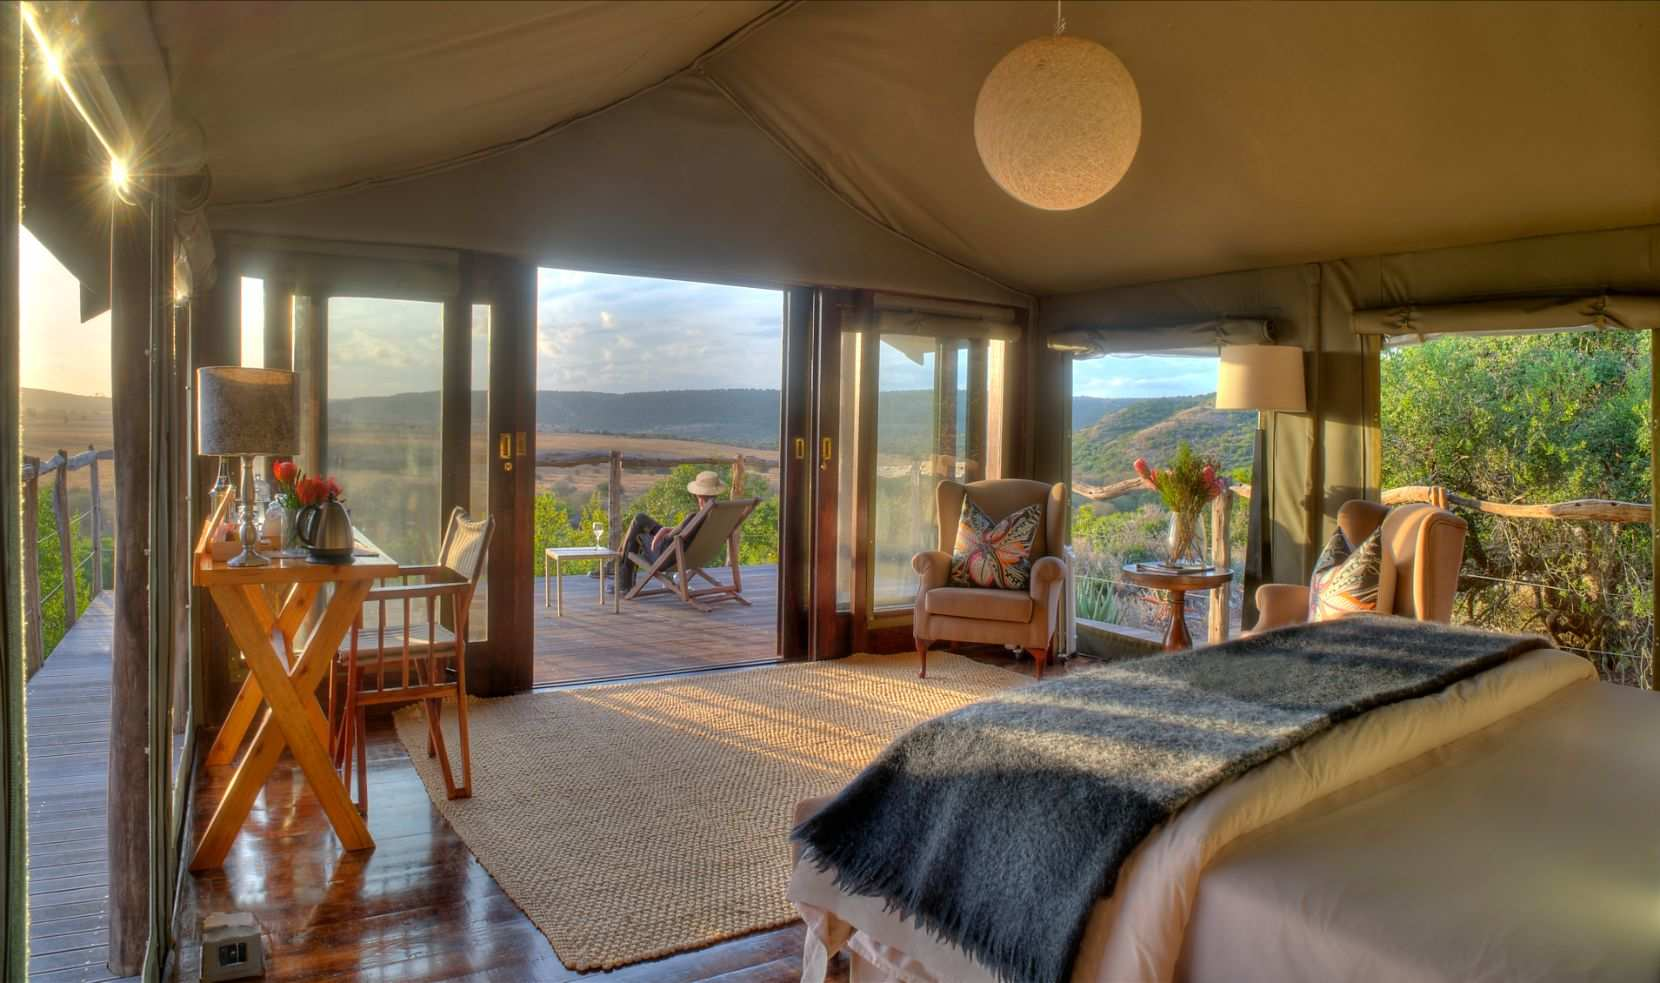 Amakhala Game Reserve Hillsnek Safari Camp Tent Views